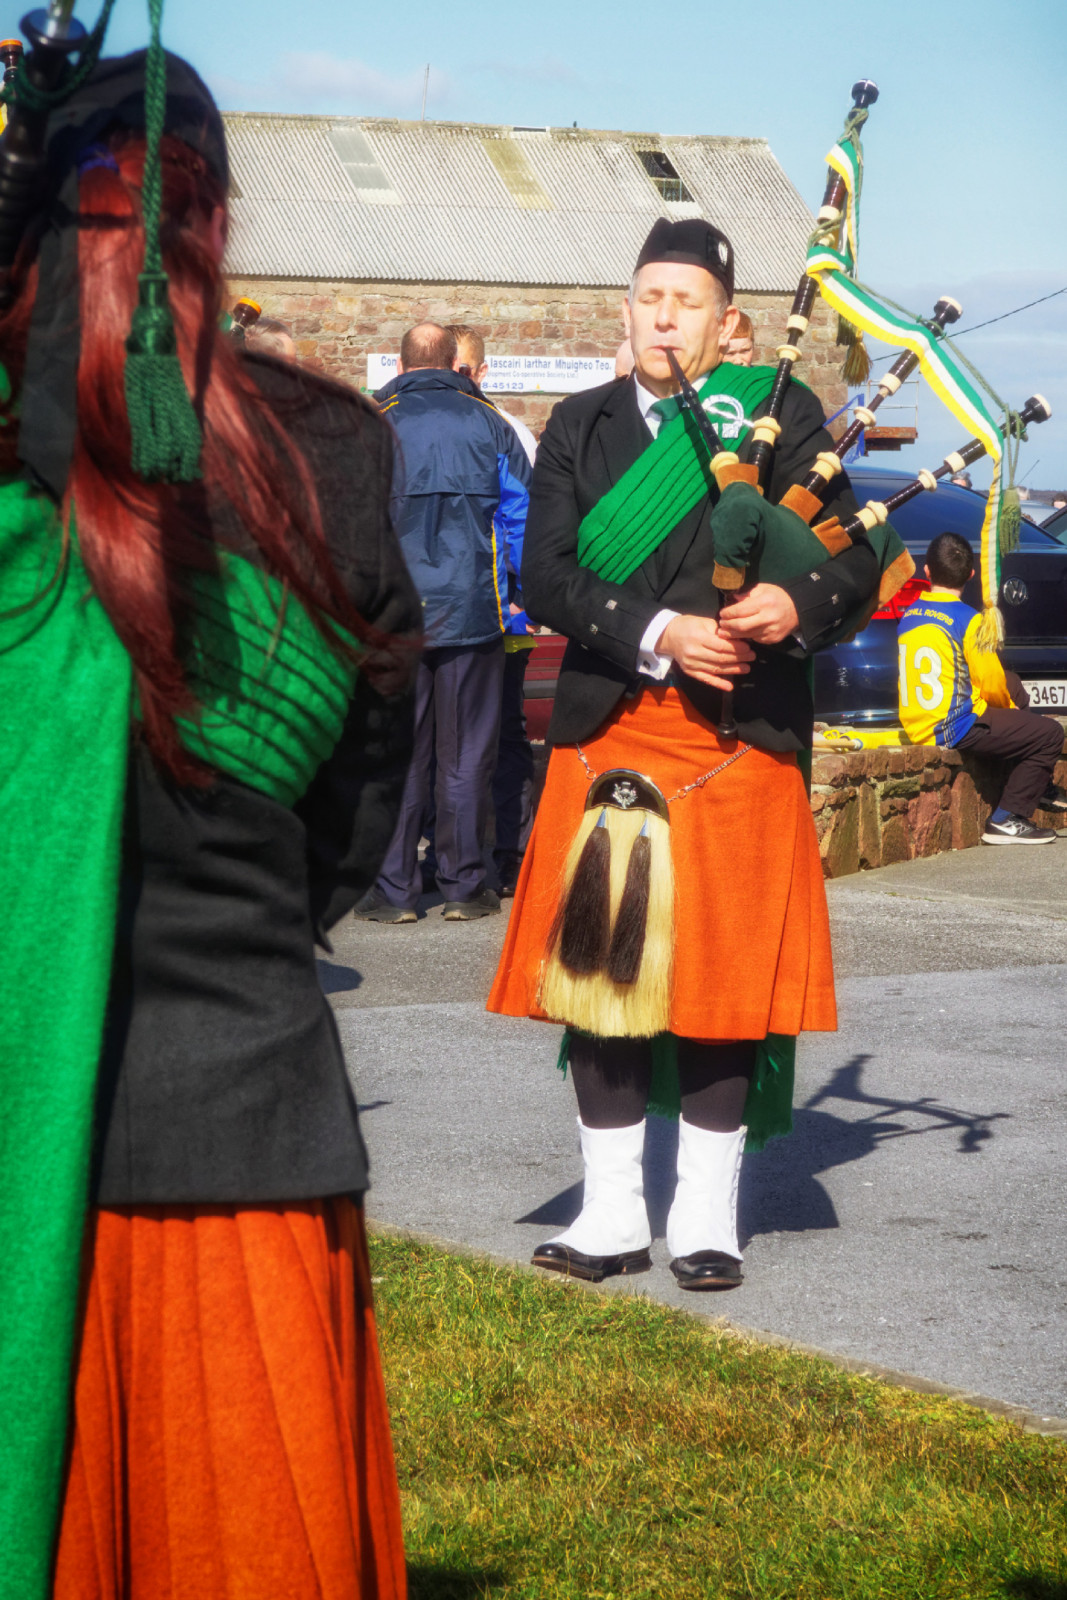 20160320122349-ie-achill-sound_parade-_DxO_13in_DxO96